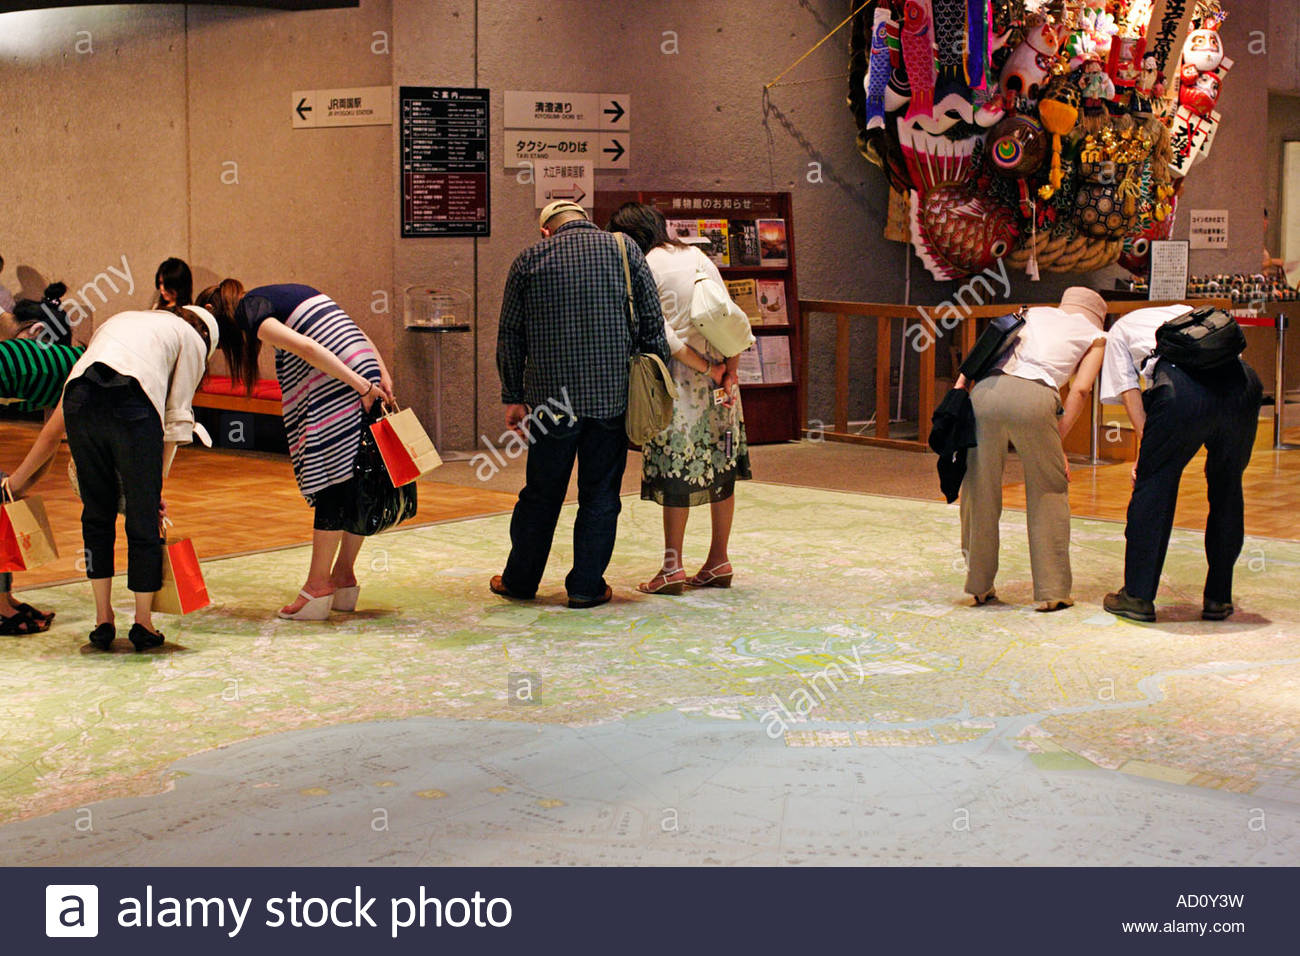 In the Edo Tokyo Museum visitors study the city on a giant floor map; Ryogaku, Tokyo, Japan - Stock Image